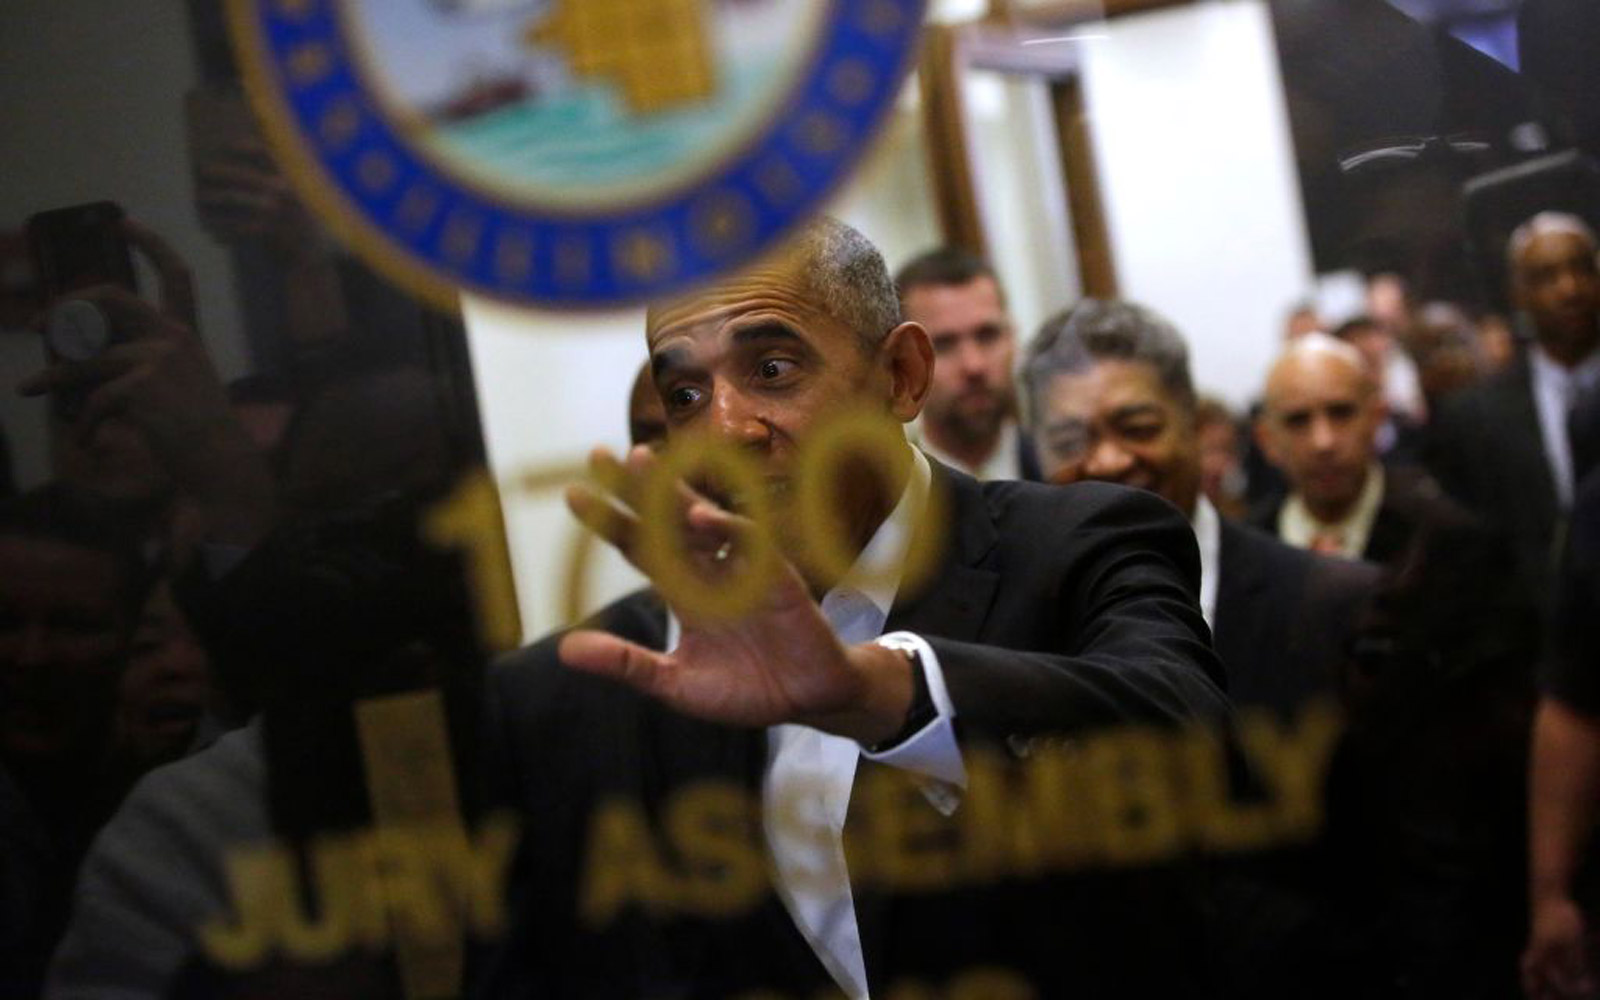 Barack Obama Just Reported for Jury Duty in Chicago